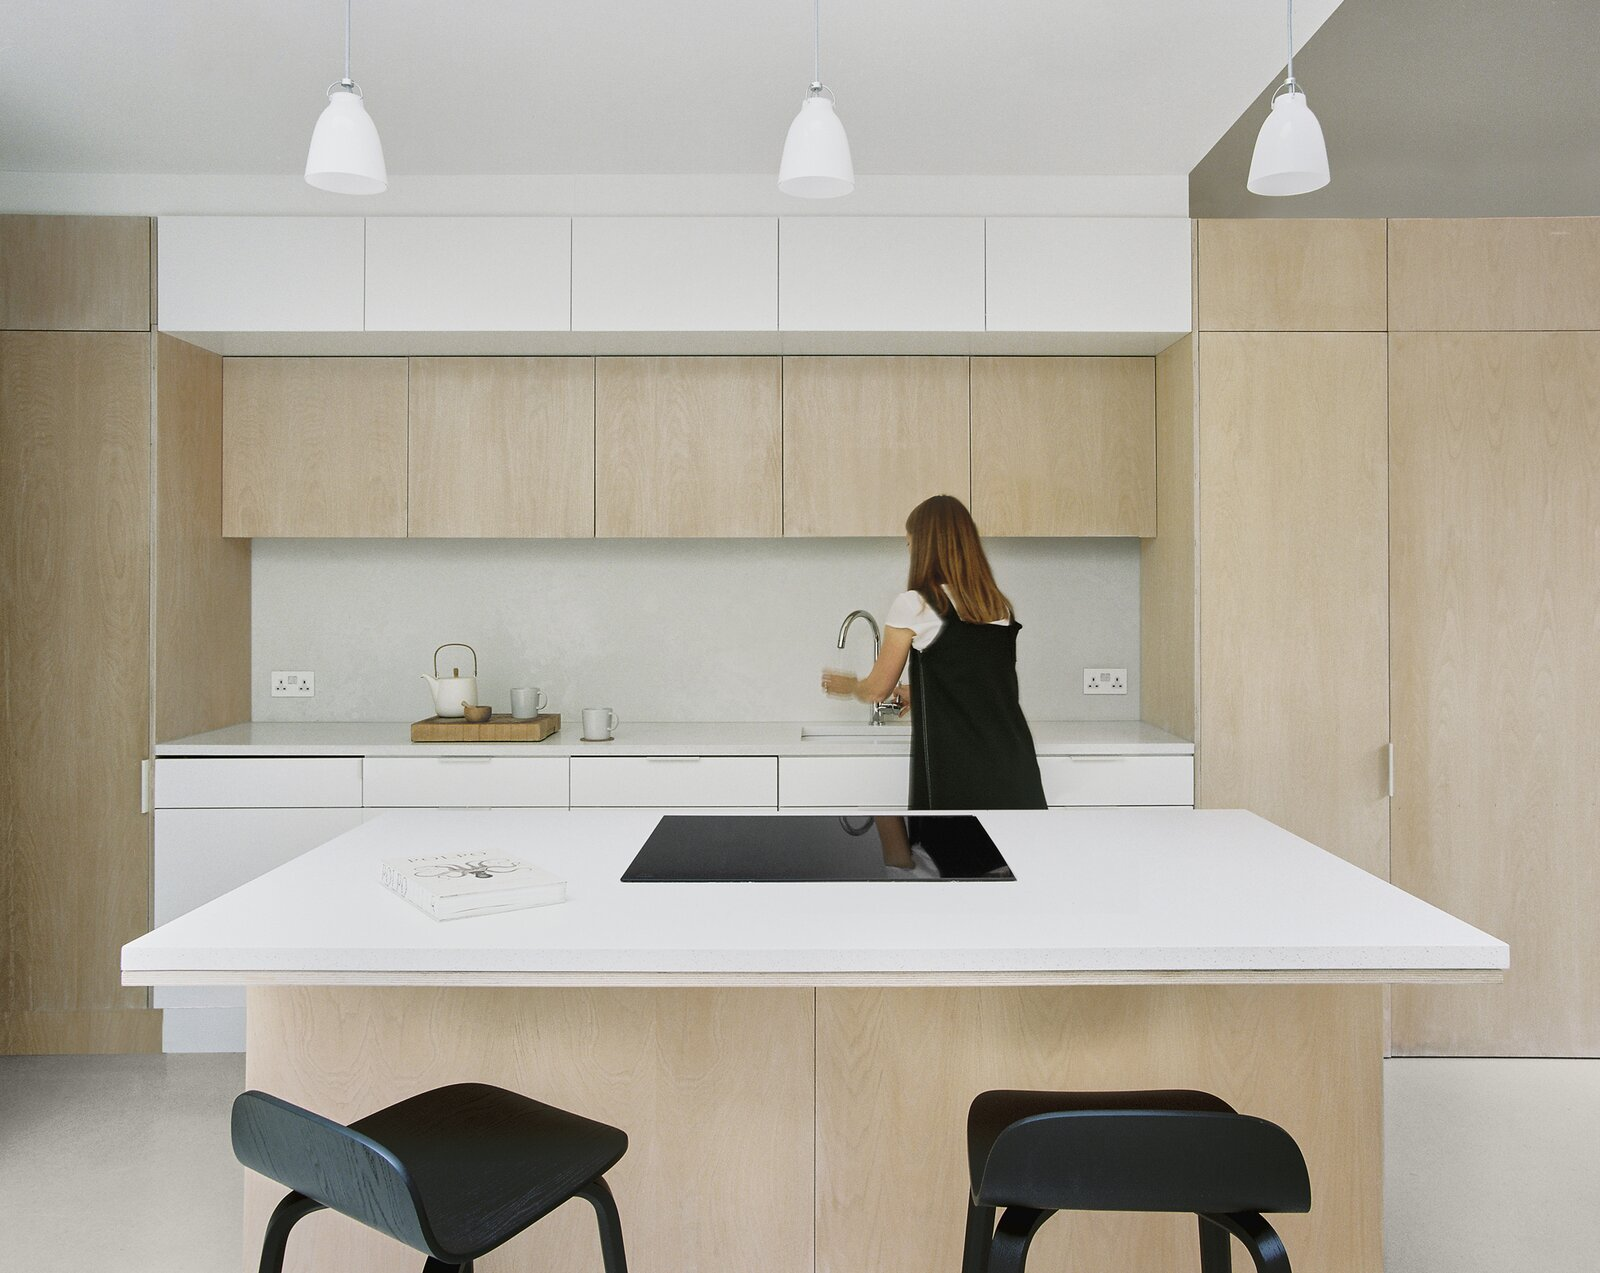 Kitchen of Zigzag Roof House by 4 S Architecture.